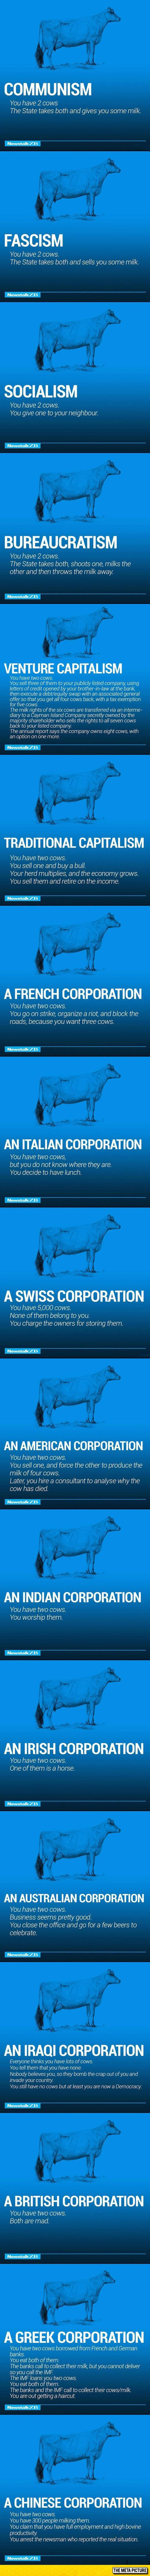 cool The World's Economy Explained With Just Two Cows by http://dezdemonhumoraddiction.space/work-humor/the-worlds-economy-explained-with-just-two-cows-2/